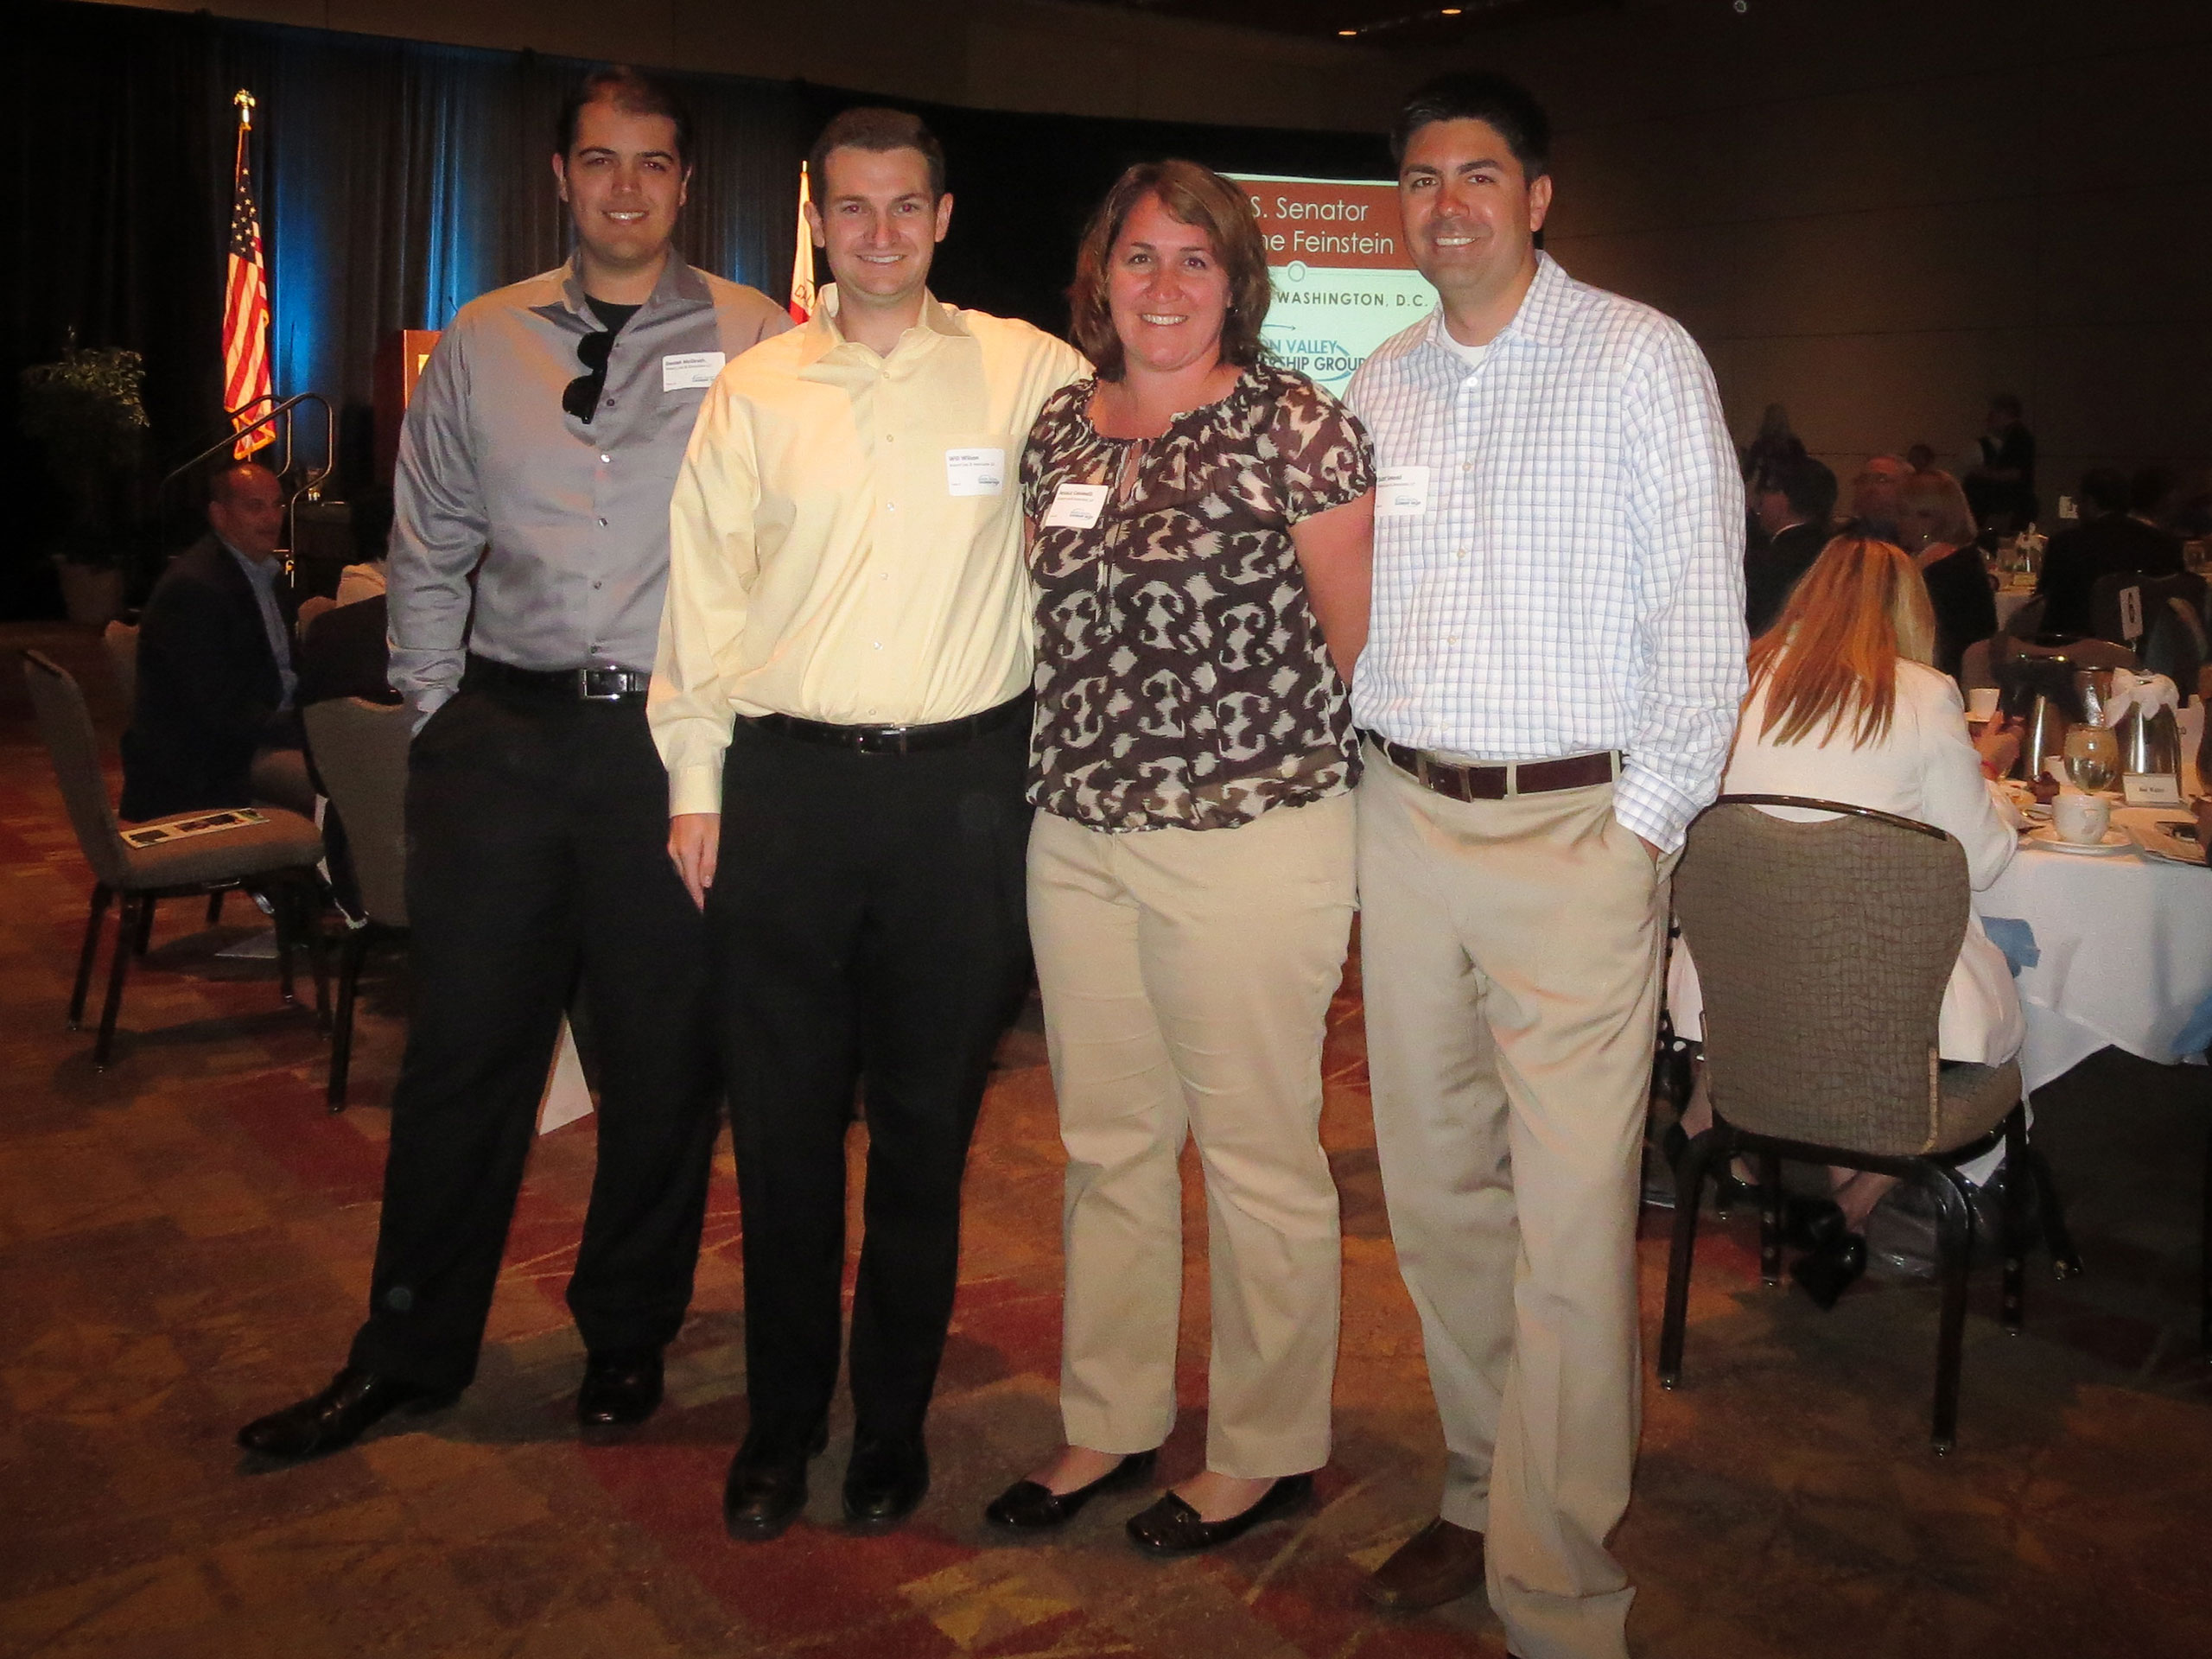 Daniel, Will, Jessica and Scott Supporting Silicon Valley Leadership Group